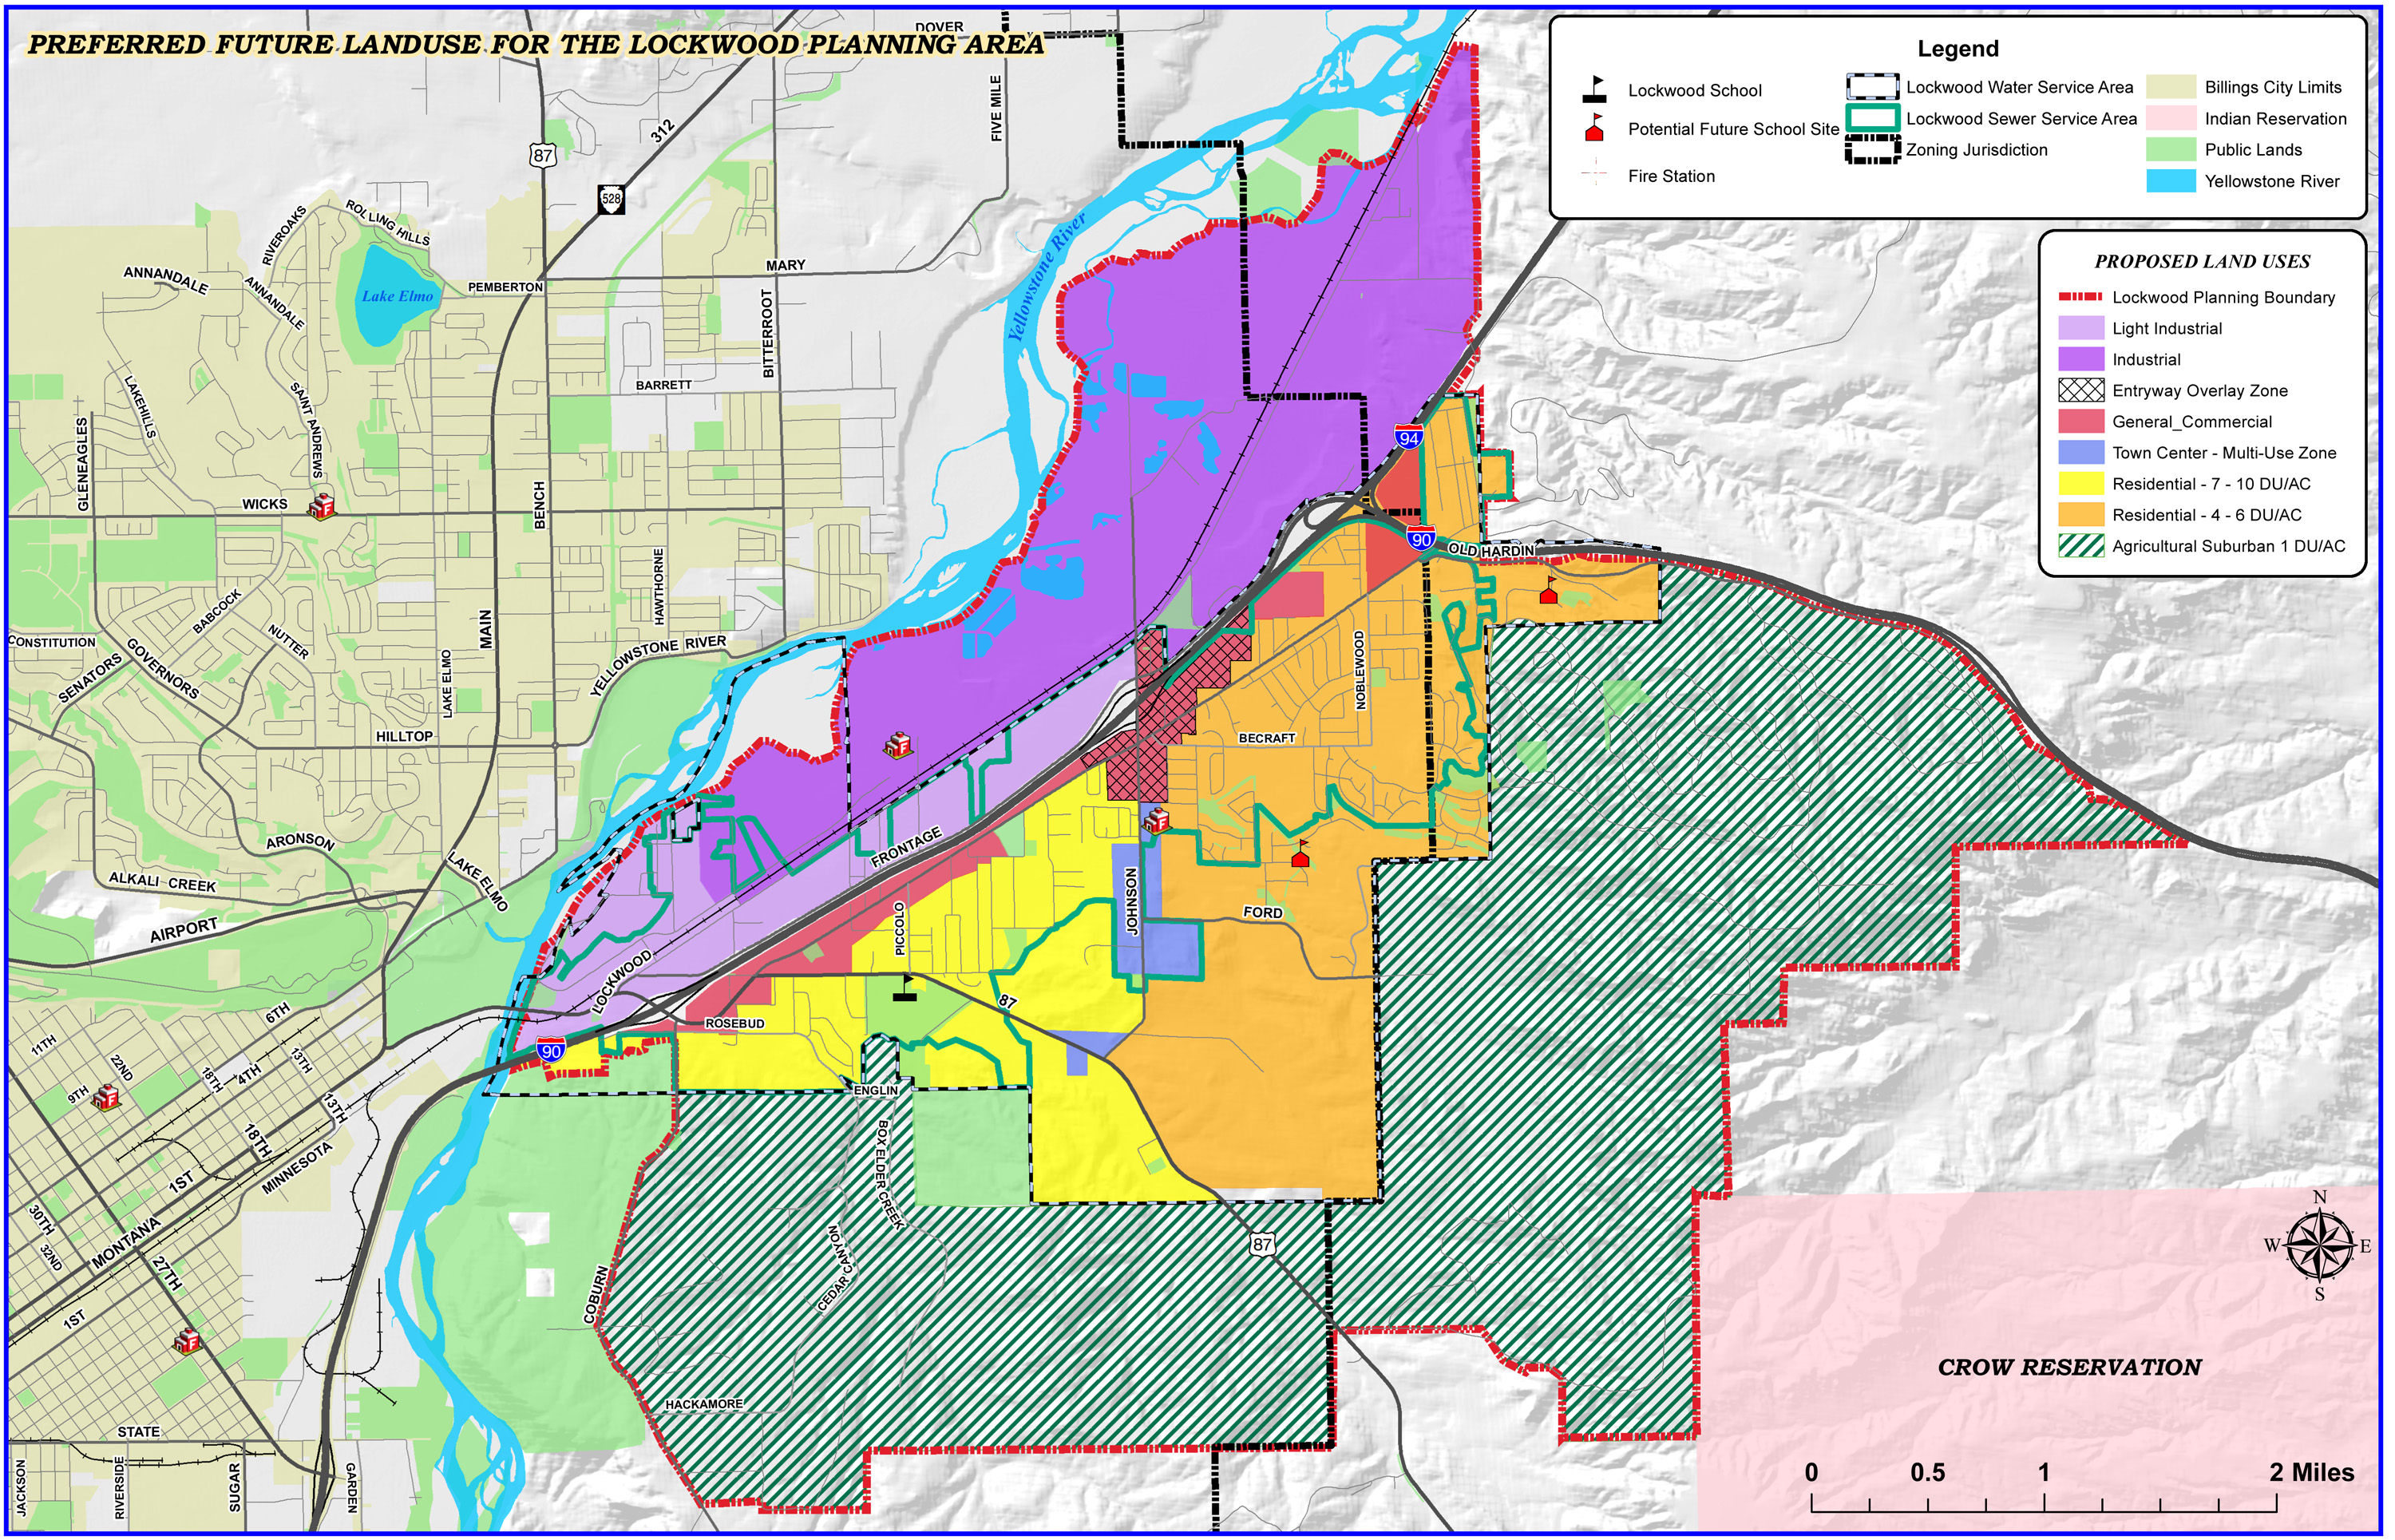 map of proposed Lockwood LandUseGrowthPolicy 1117 Lockwood